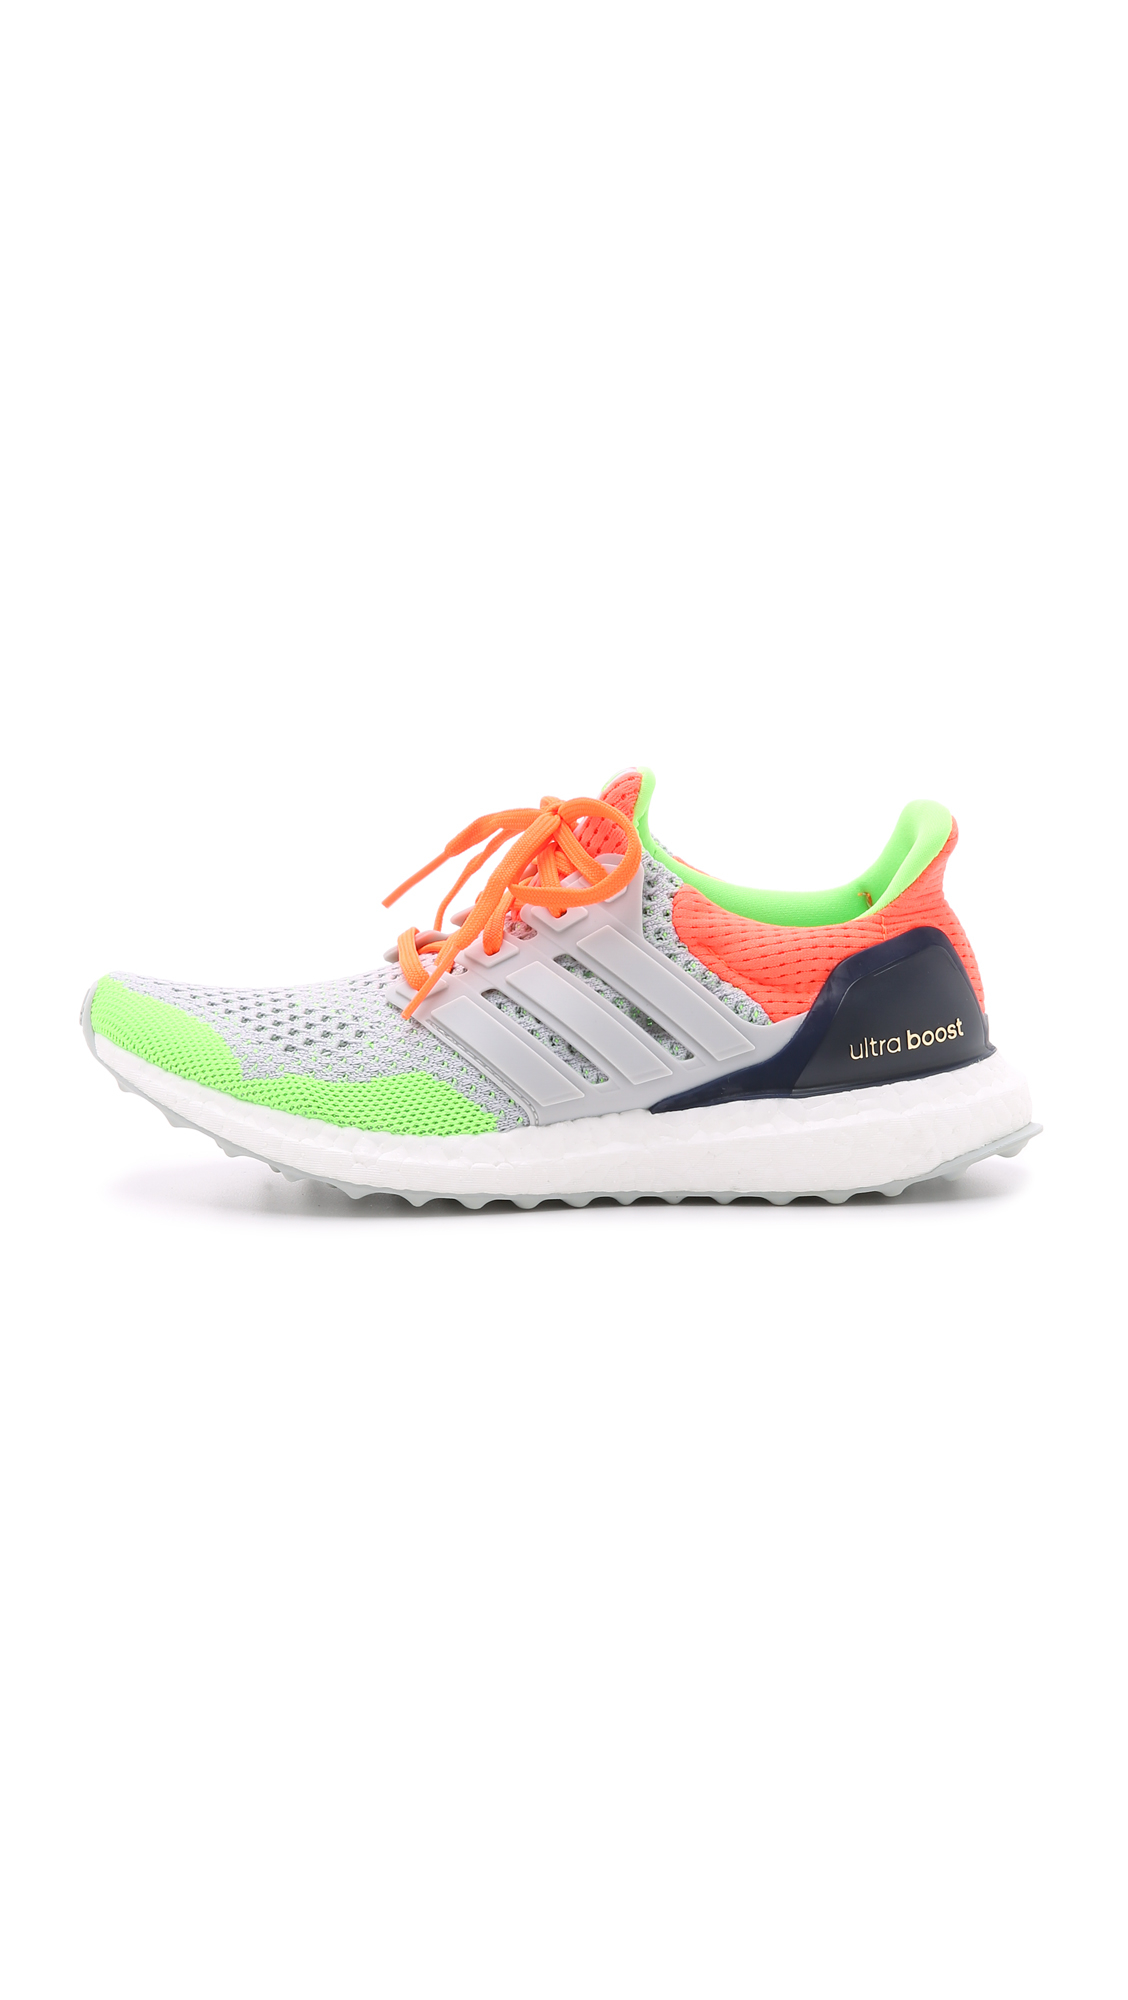 af50e3a6e5a9a adidas Ultra Boost Kolor Sneakers - Light Grey solar Orange blue in ...